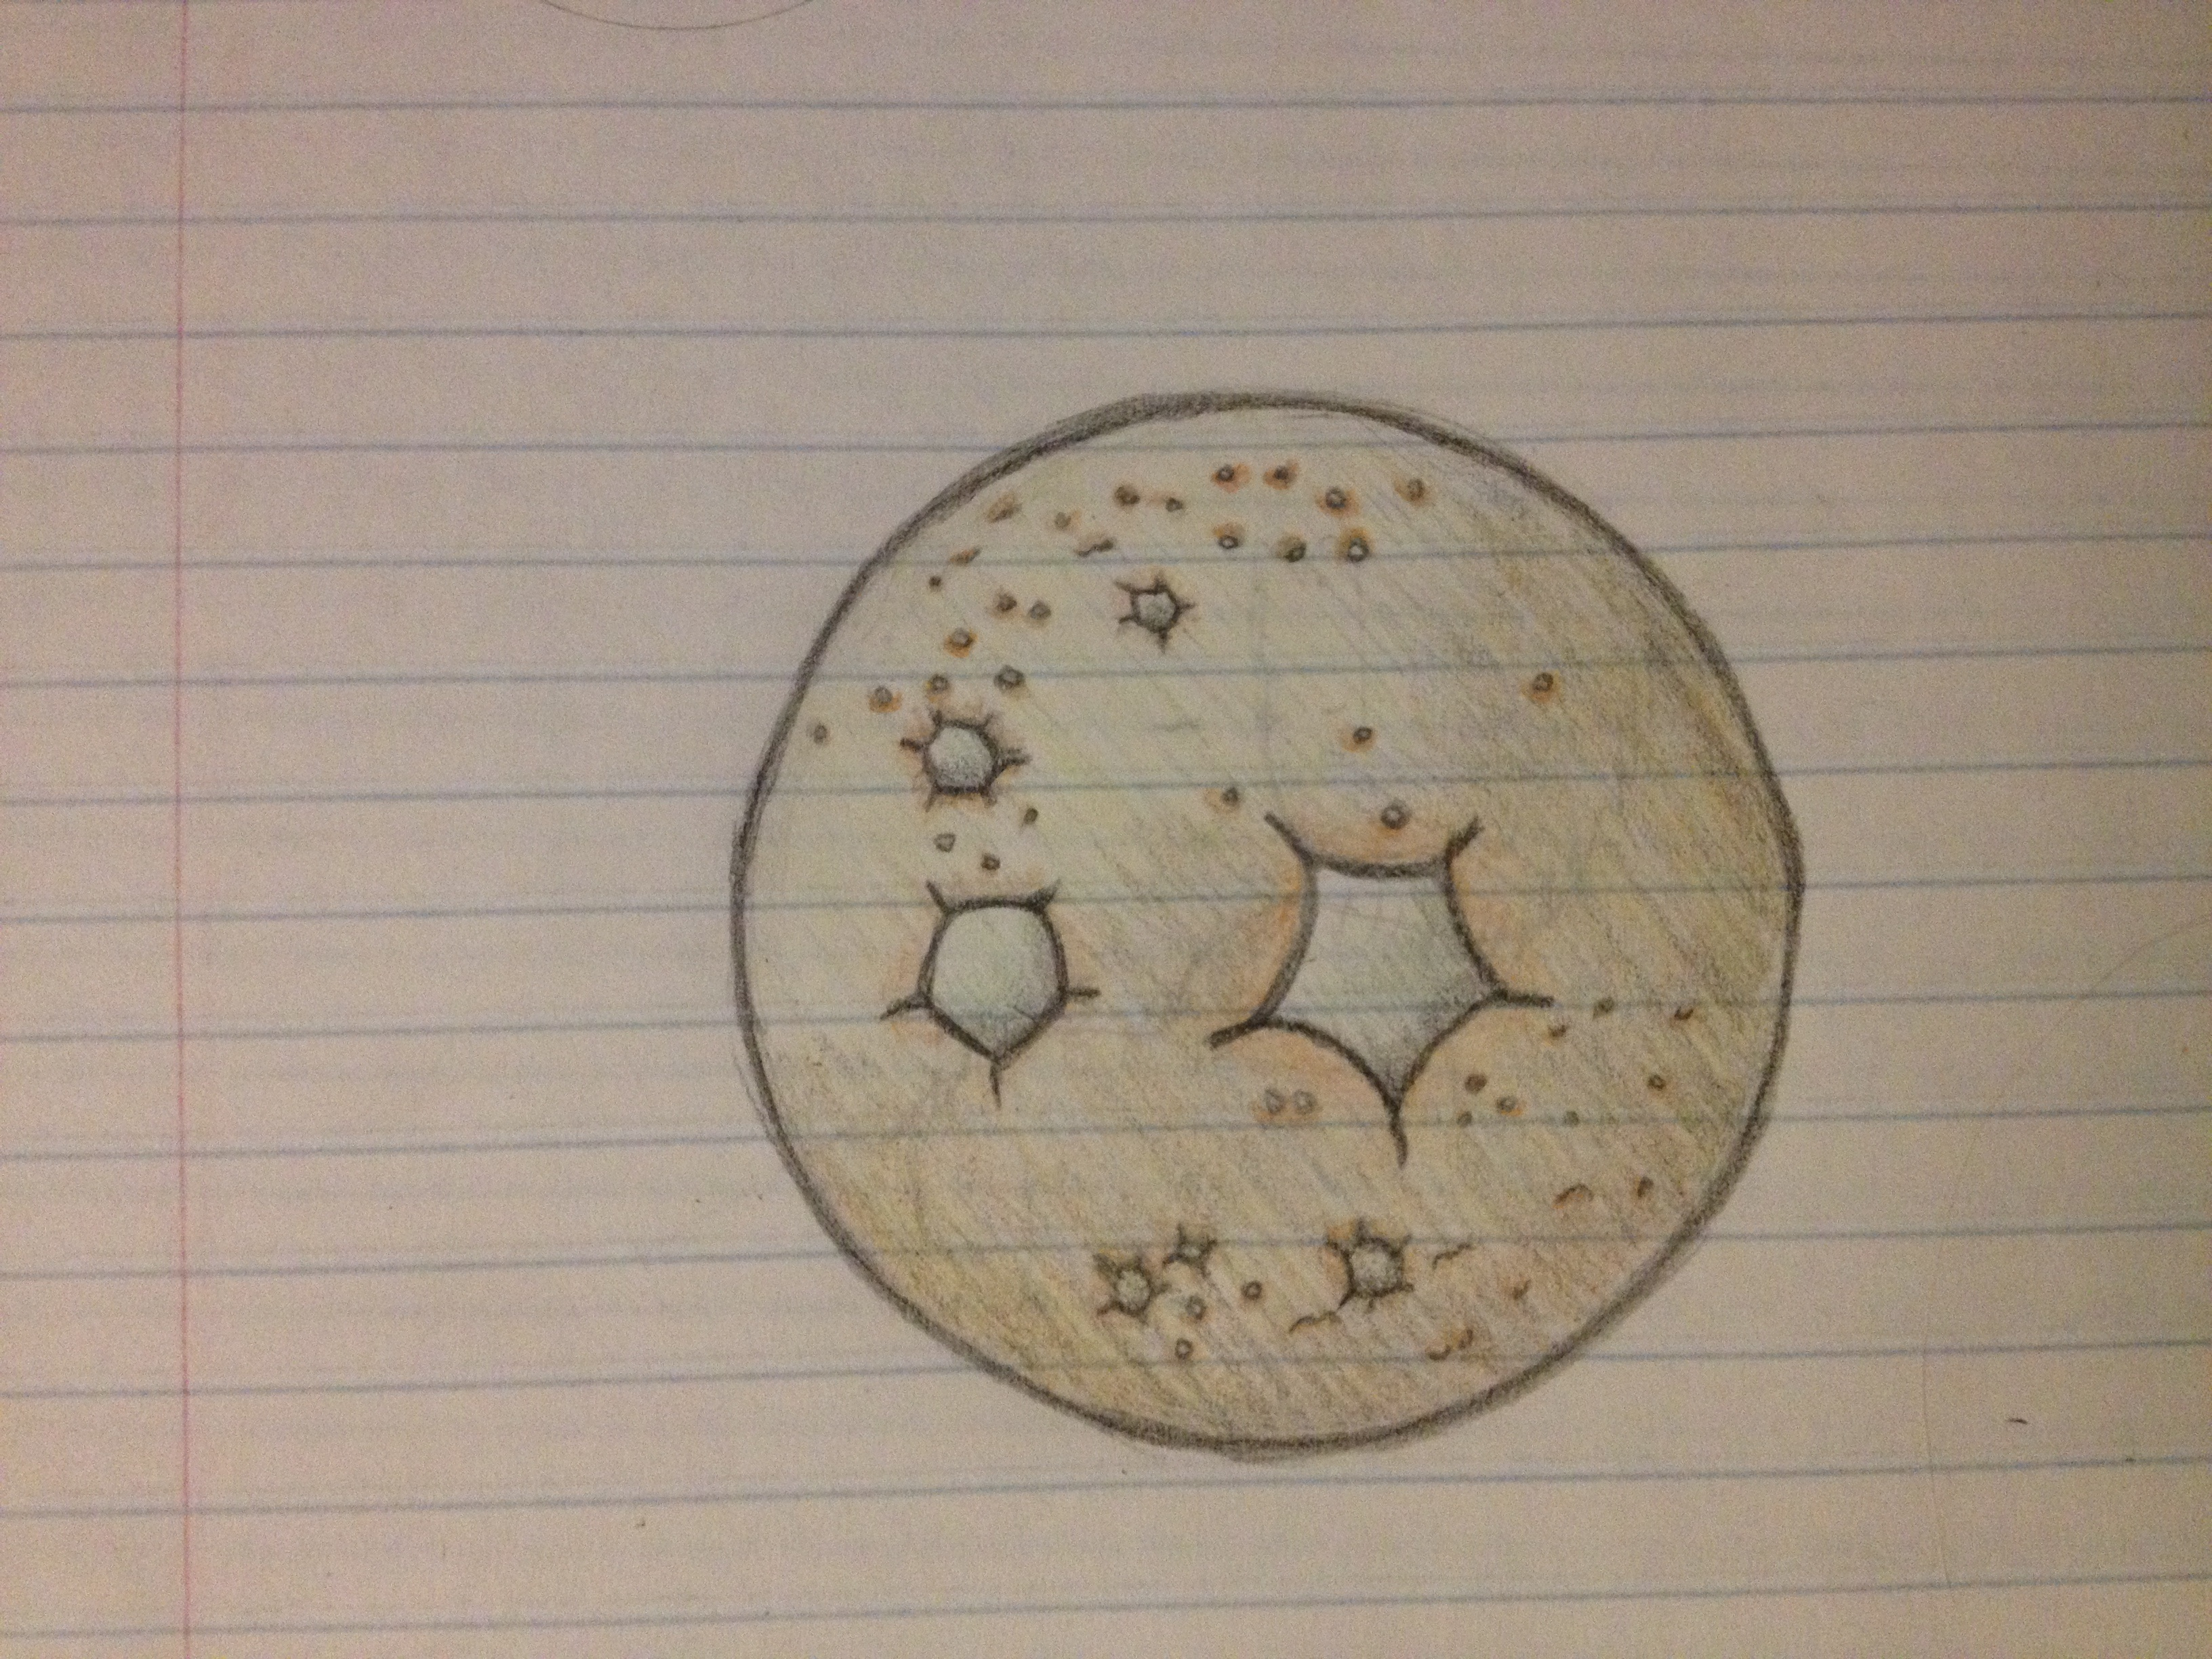 3264x2448 Drawing Of Full Moon Full Moon Doodle Drawing